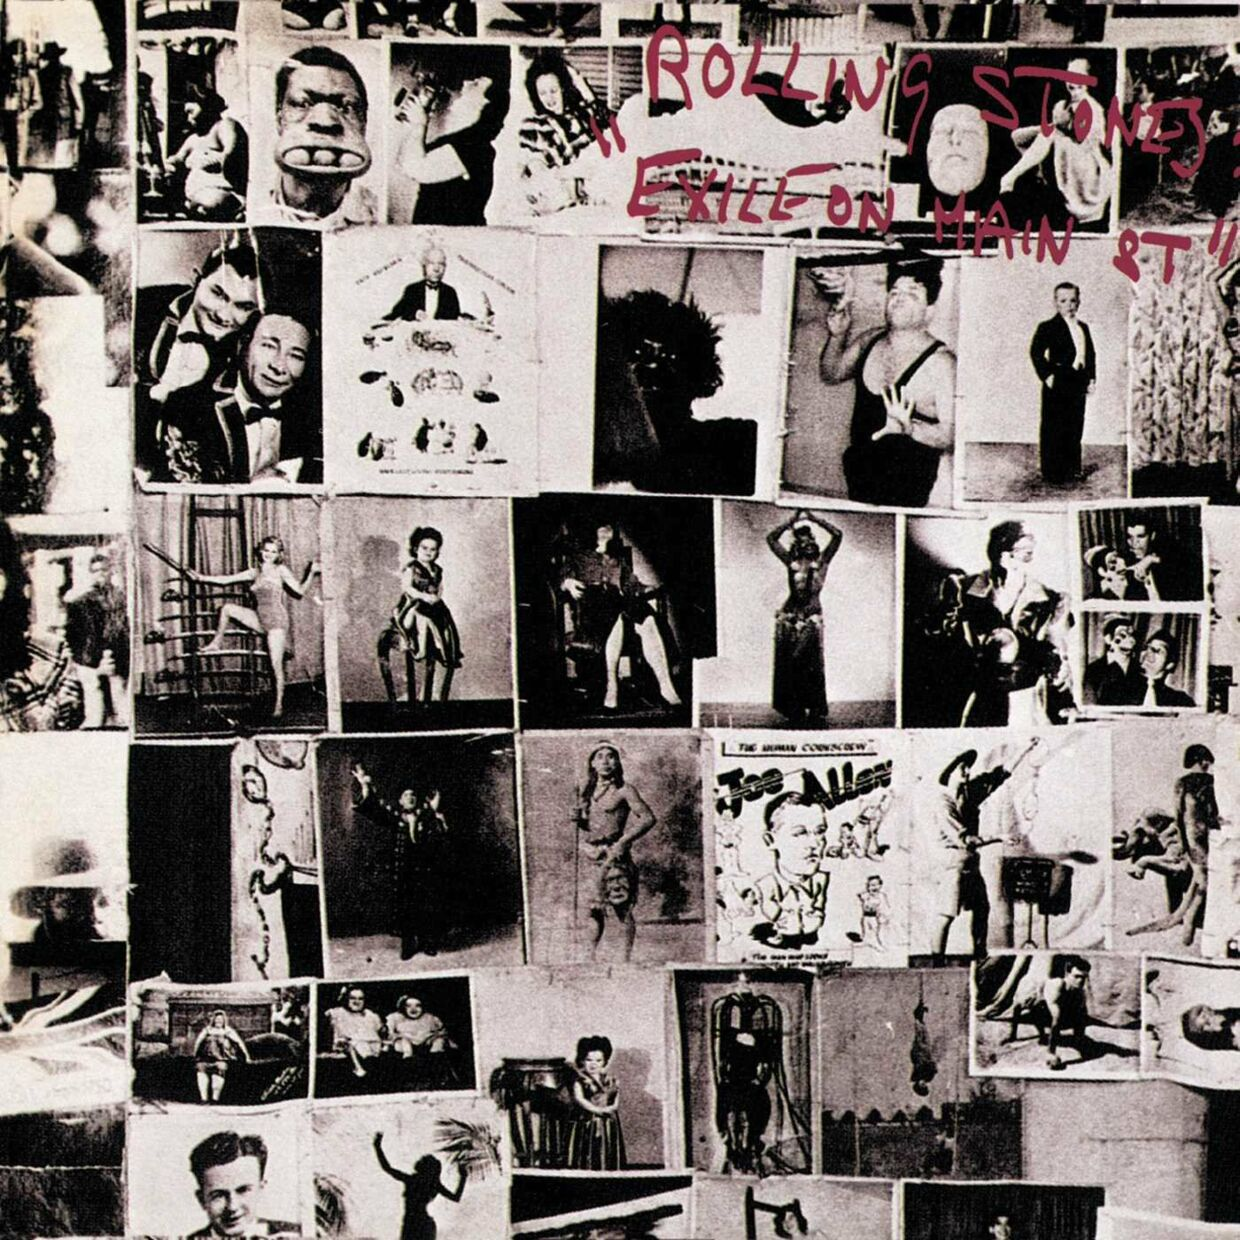 Rolling Stone, 'Exile on Mainstreet'.